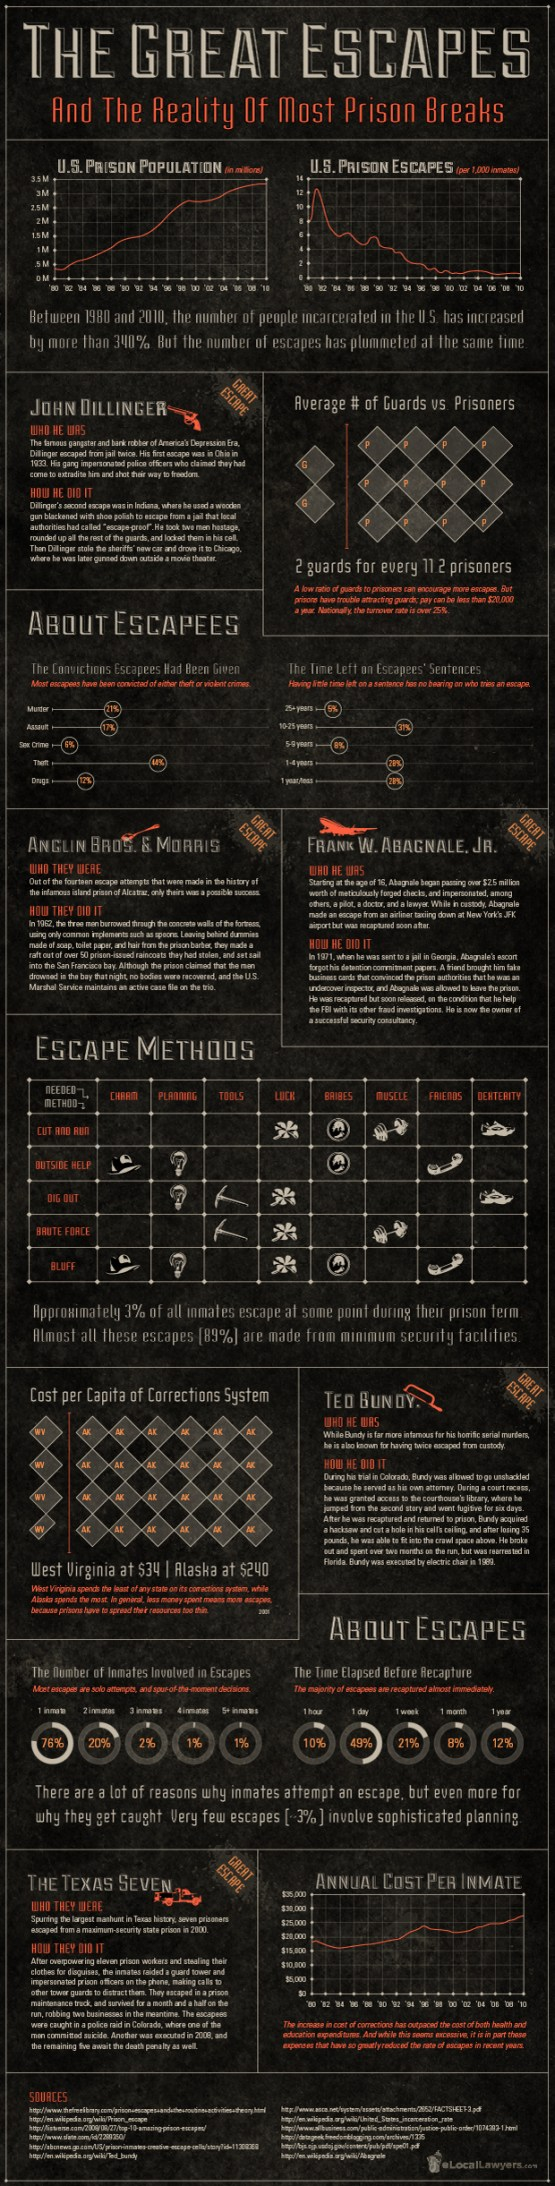 Great Escapes Infographic